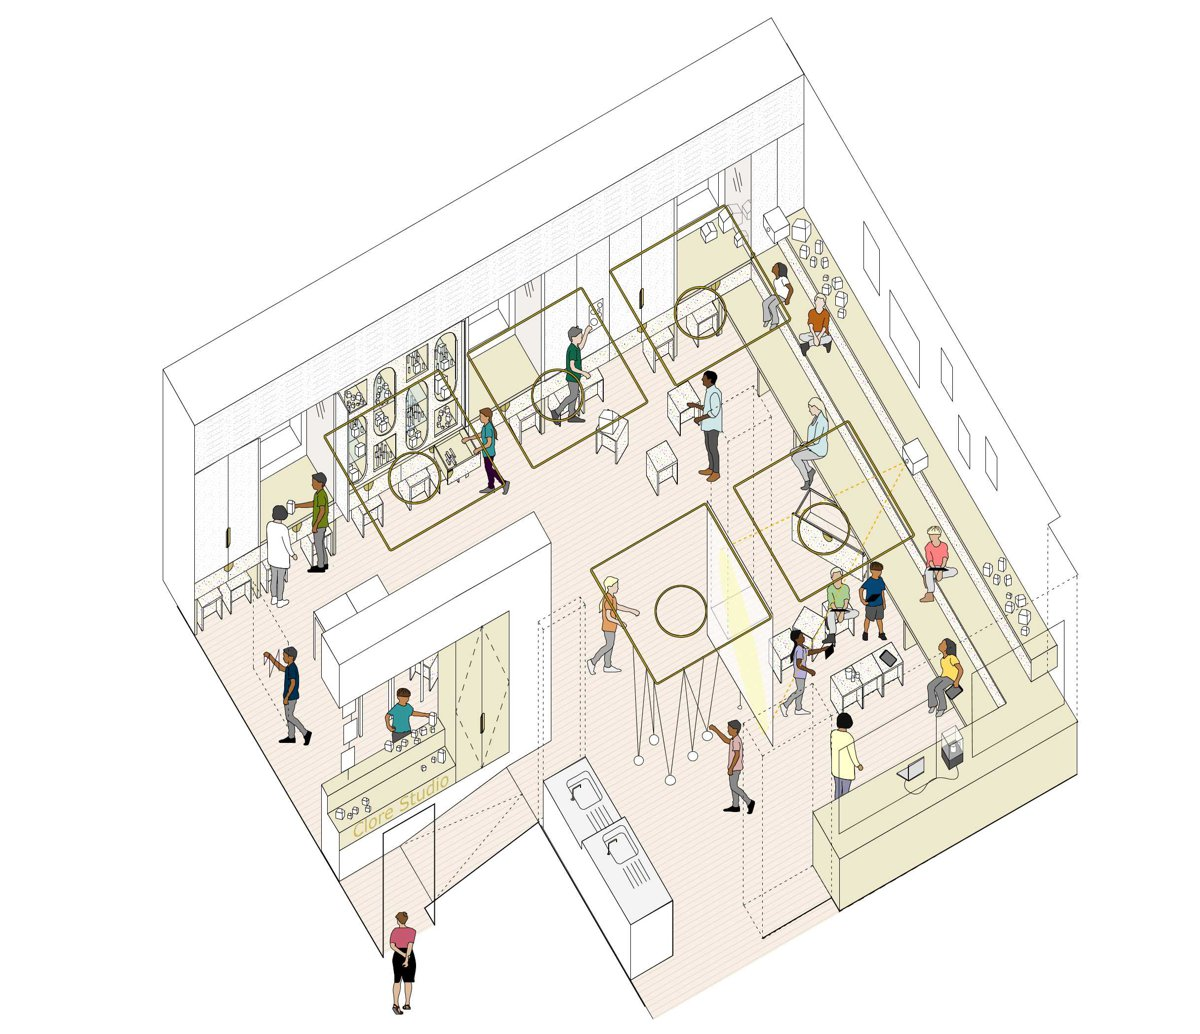 Royal Institute of British Architects to open Clore Learning Centre in London in October